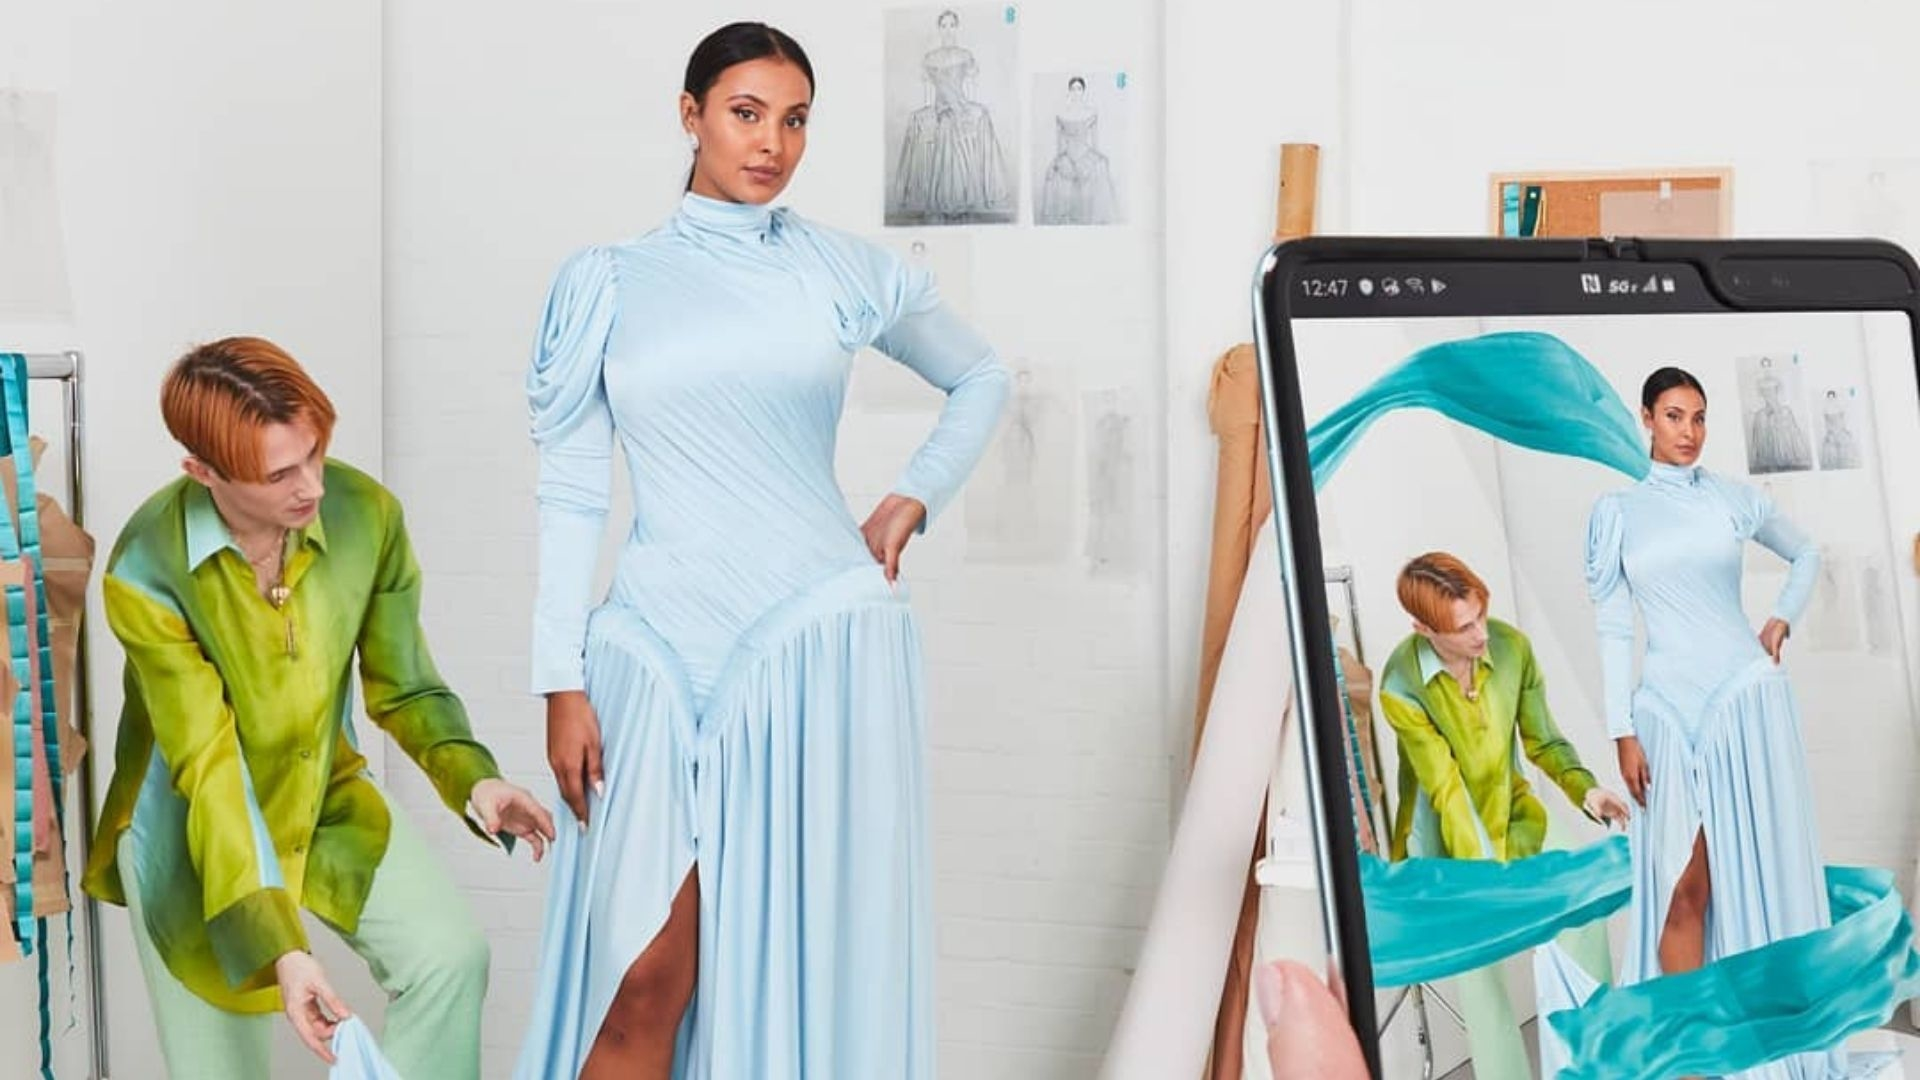 Maya Jama Wore The World's First Augmented Reality 5G Dress To The BAFTAs